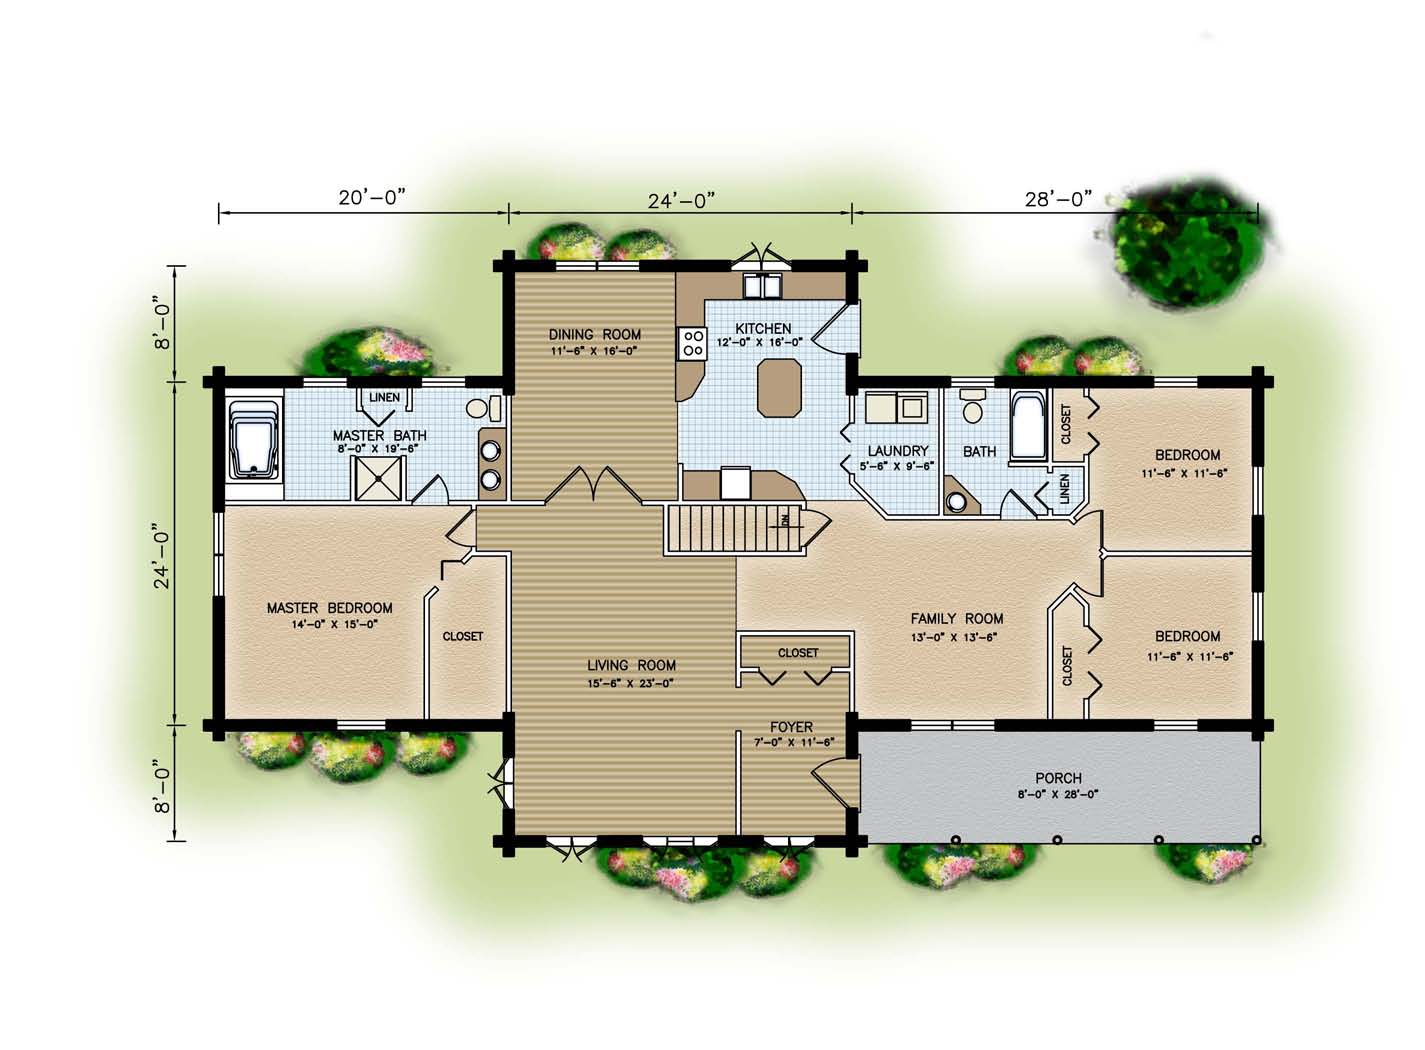 apartment floor plan examples pictures 04